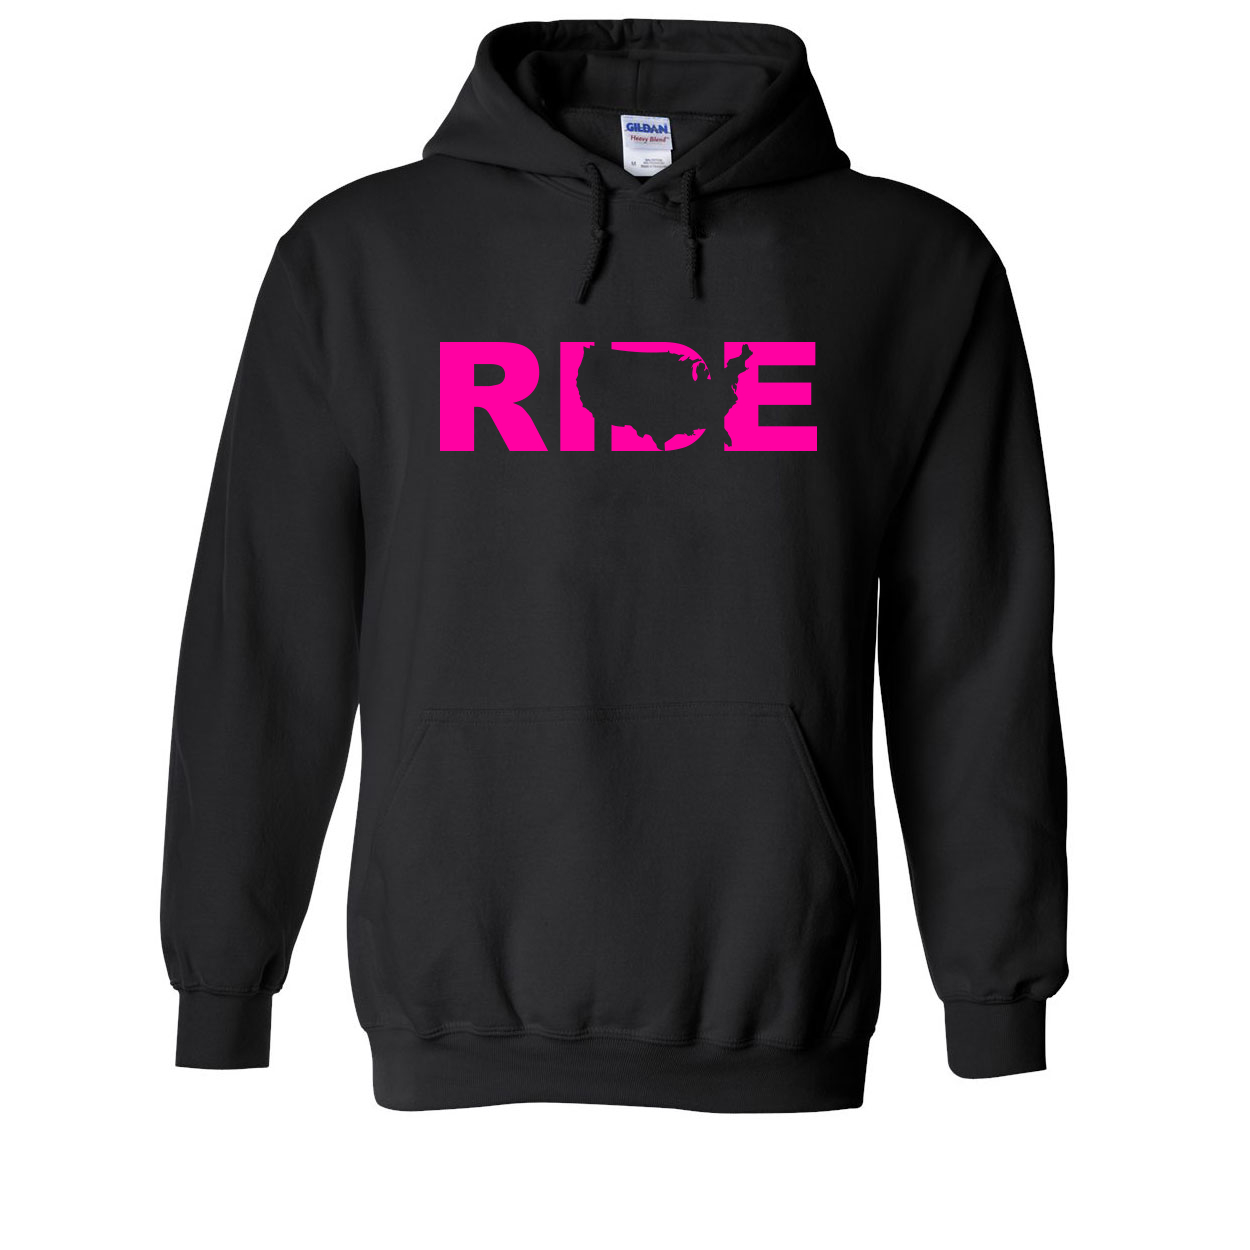 Ride United States Classic Sweatshirt Black (Pink Logo)